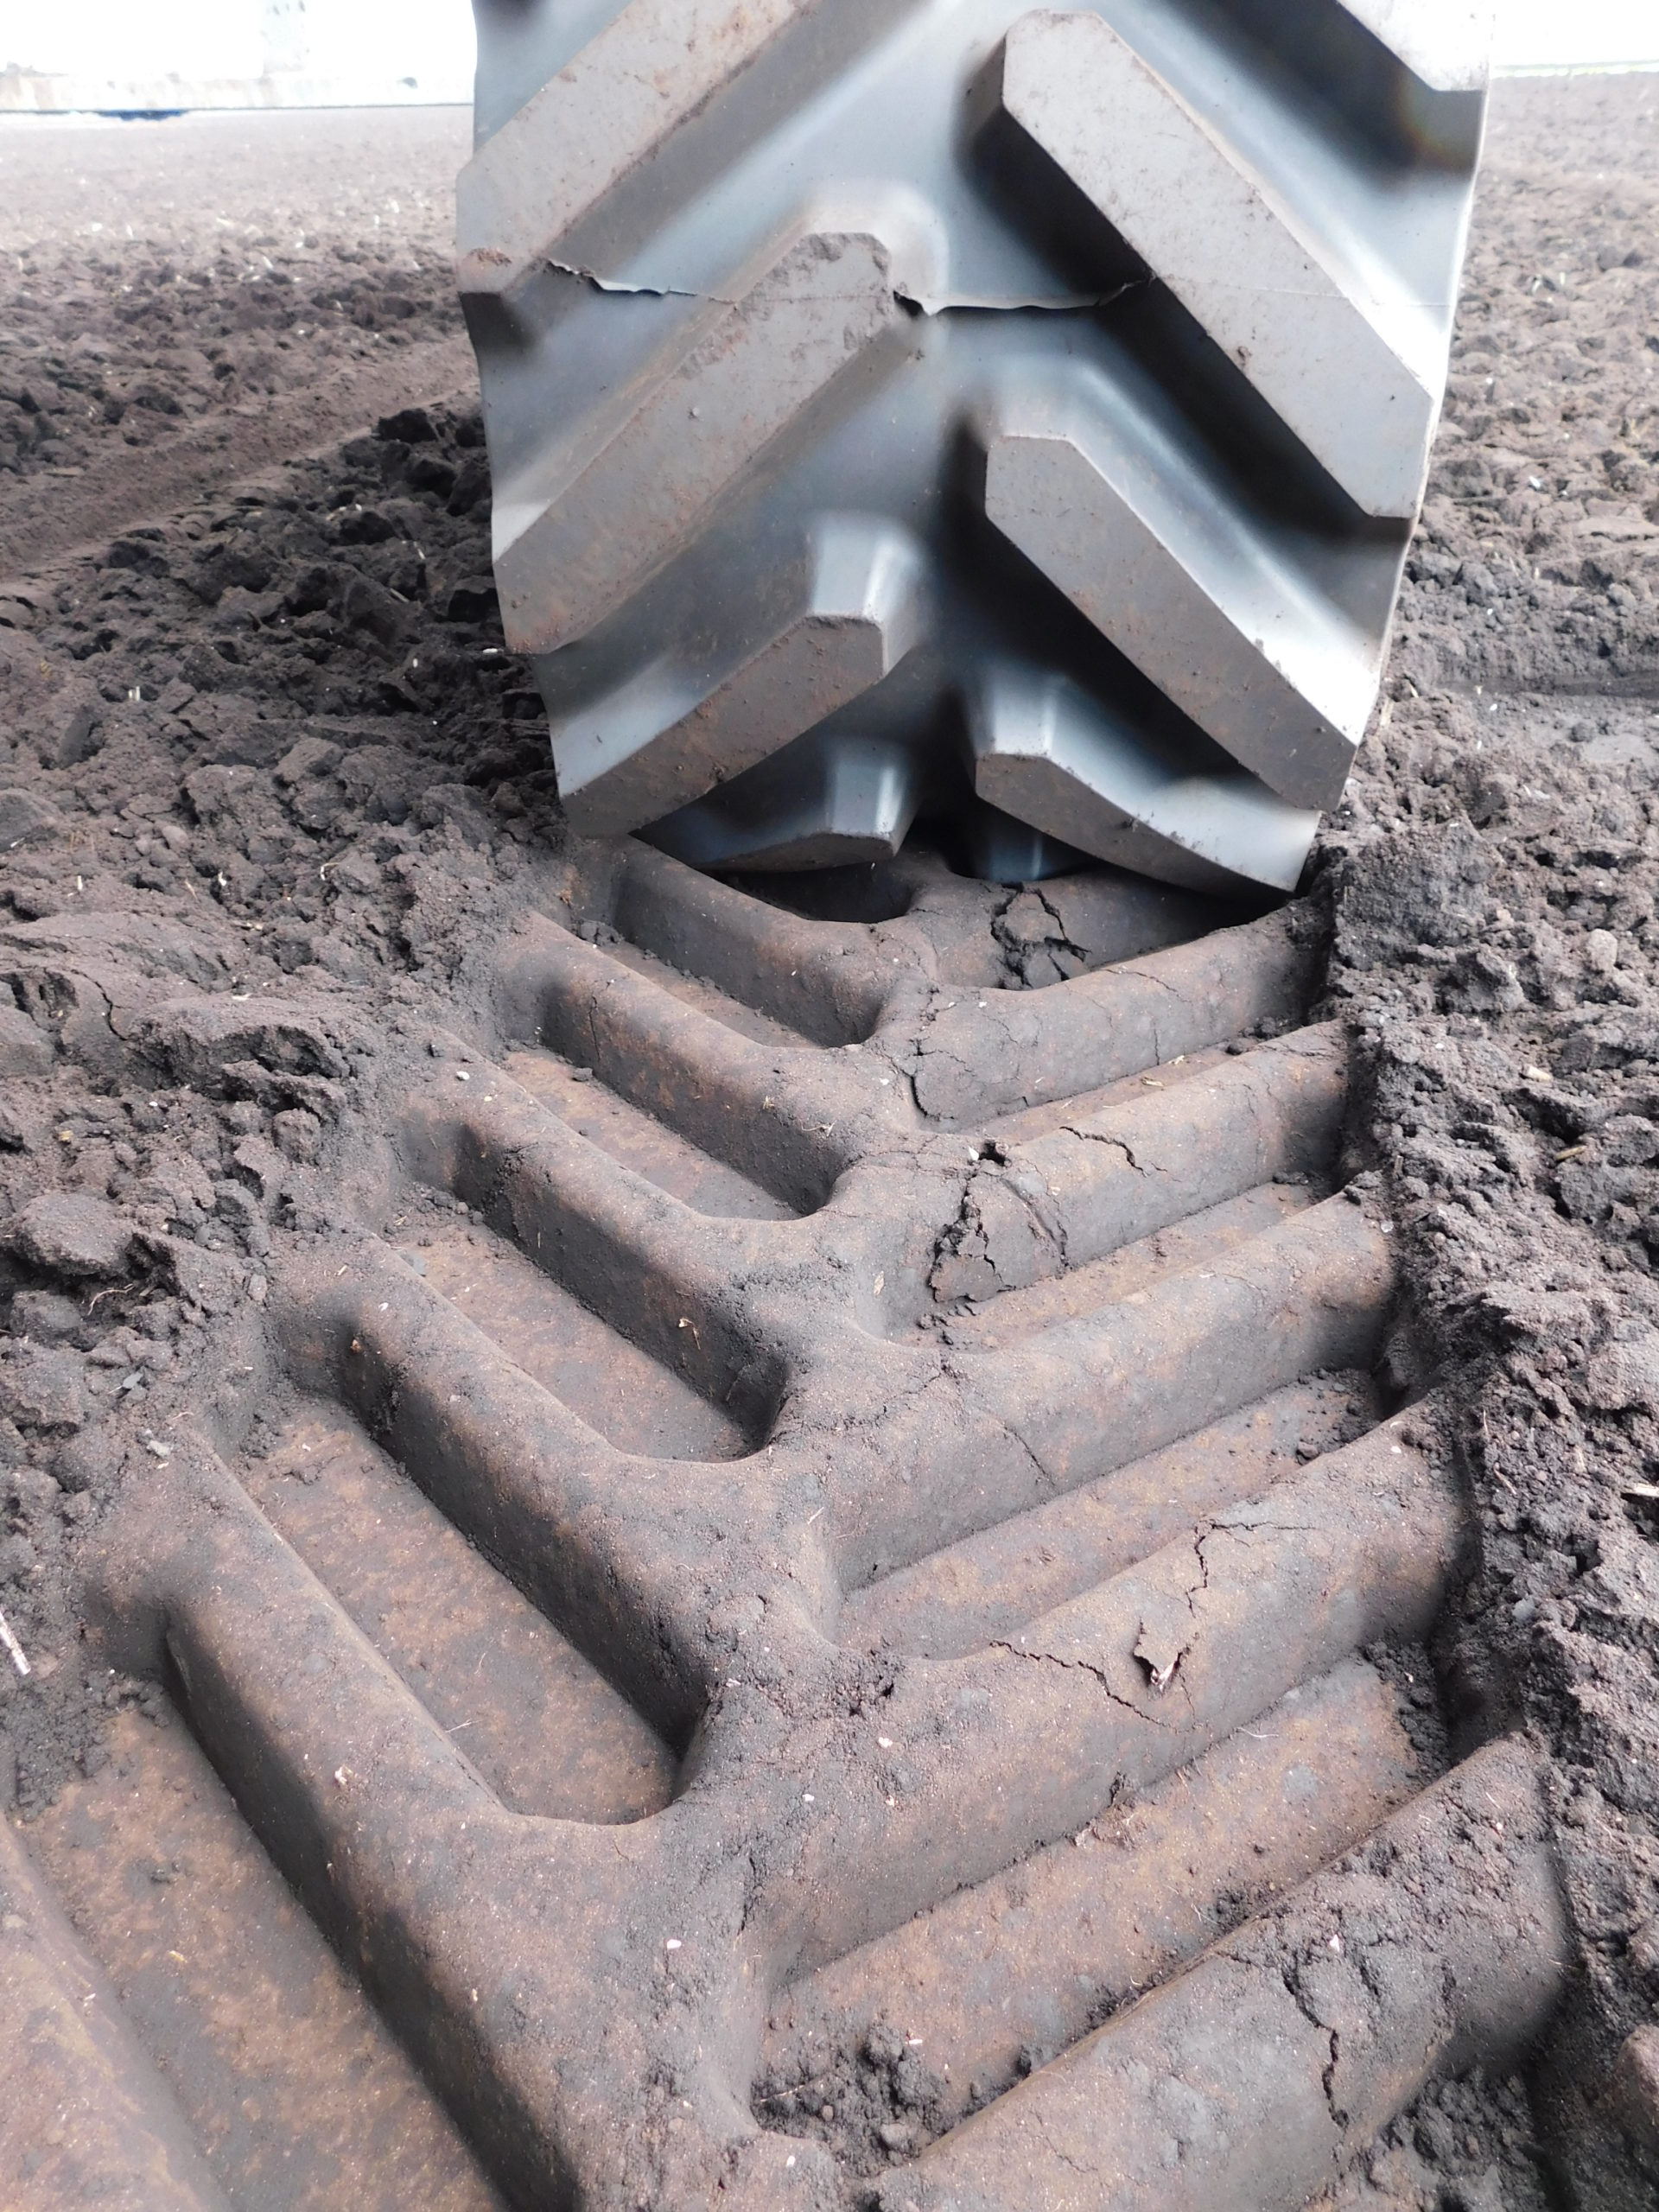 Soucy S Tech 616 tracks fitted to Valtra N134 working in Norfolk